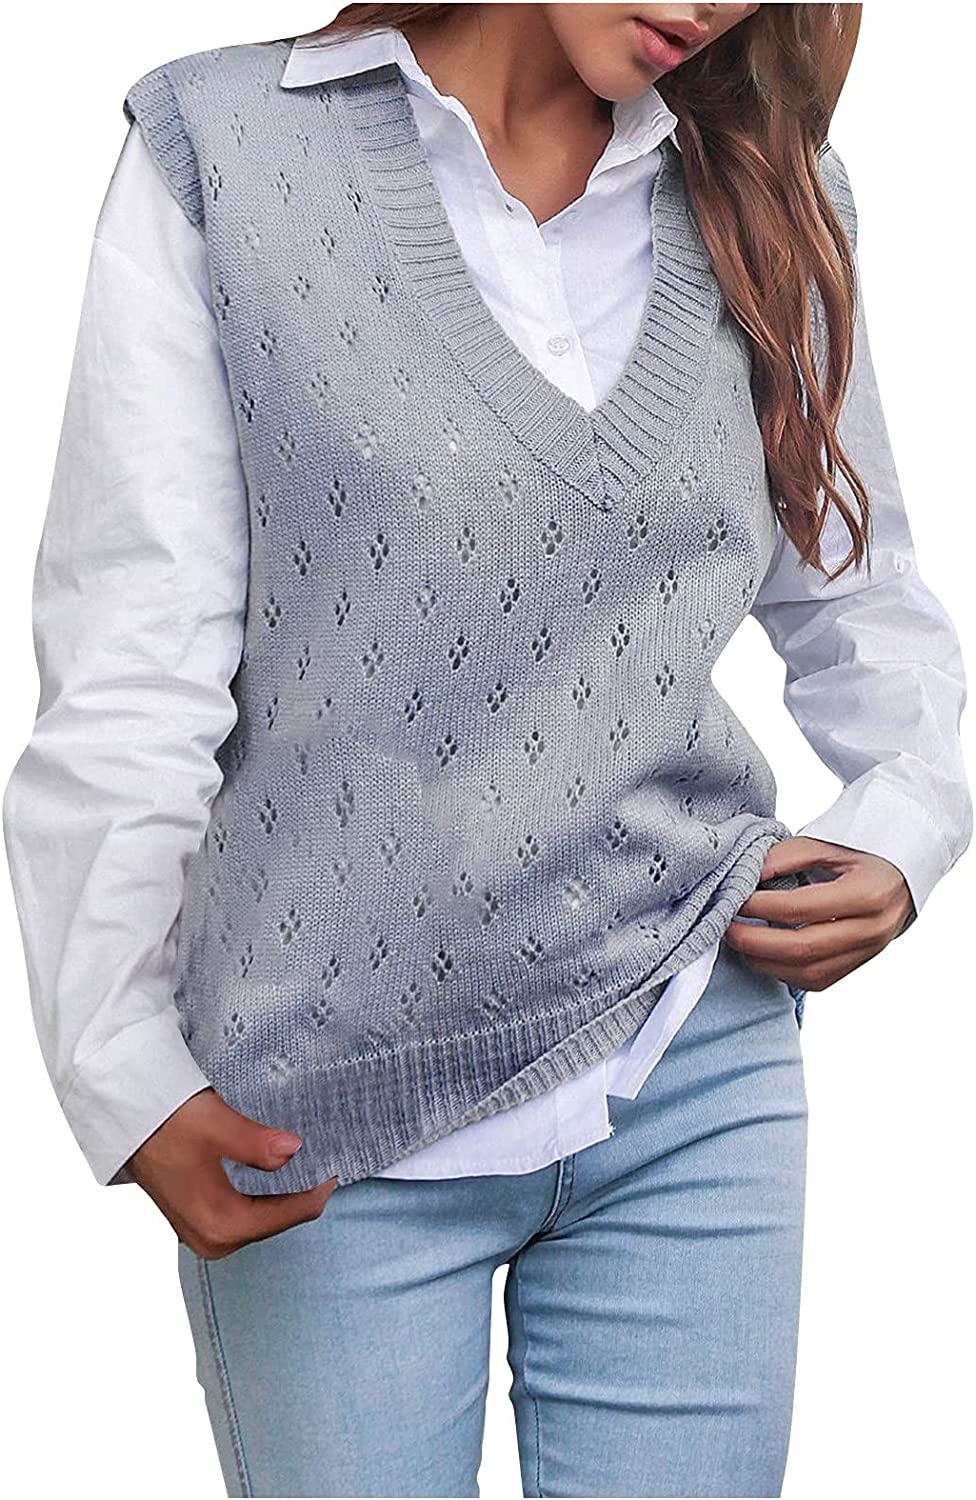 Sweater Vest Womens V-Neck Sleeveless Loose Top Fashion Solid color Casual Knitted Vest